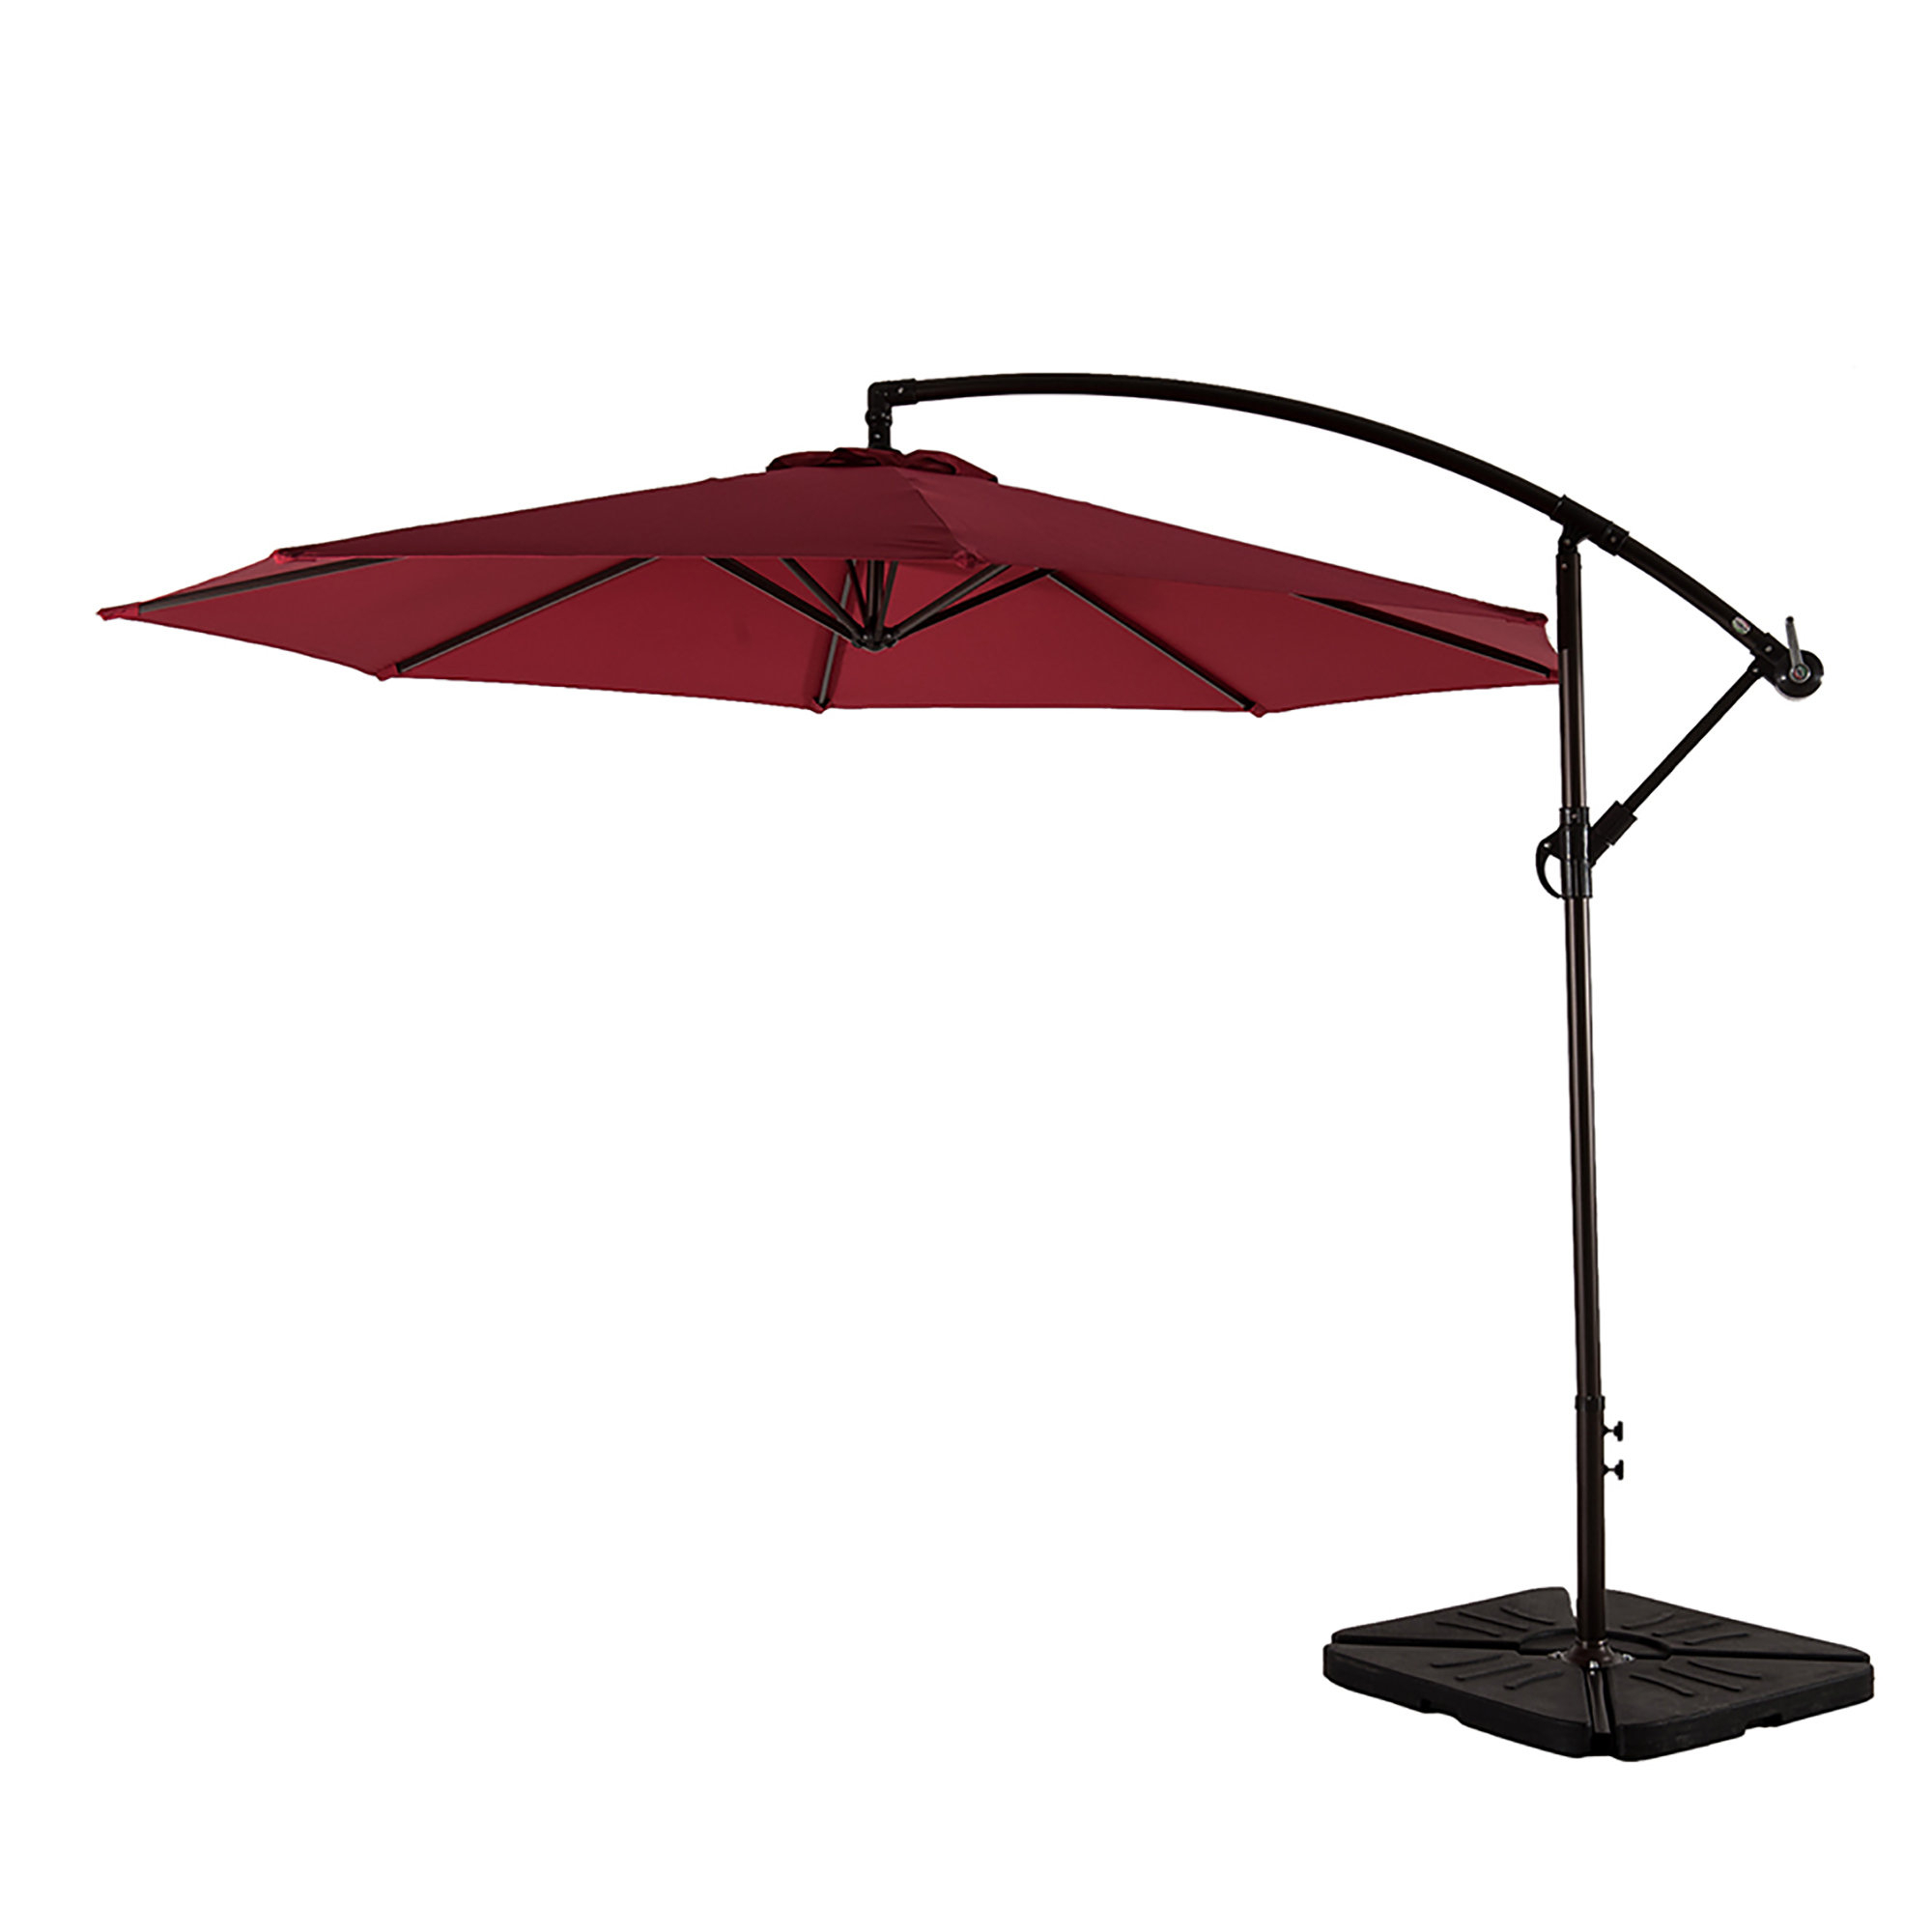 Karr 10' Cantilever Umbrella With Regard To Well Known Gribble 3Cantilever Umbrellas (Gallery 13 of 20)